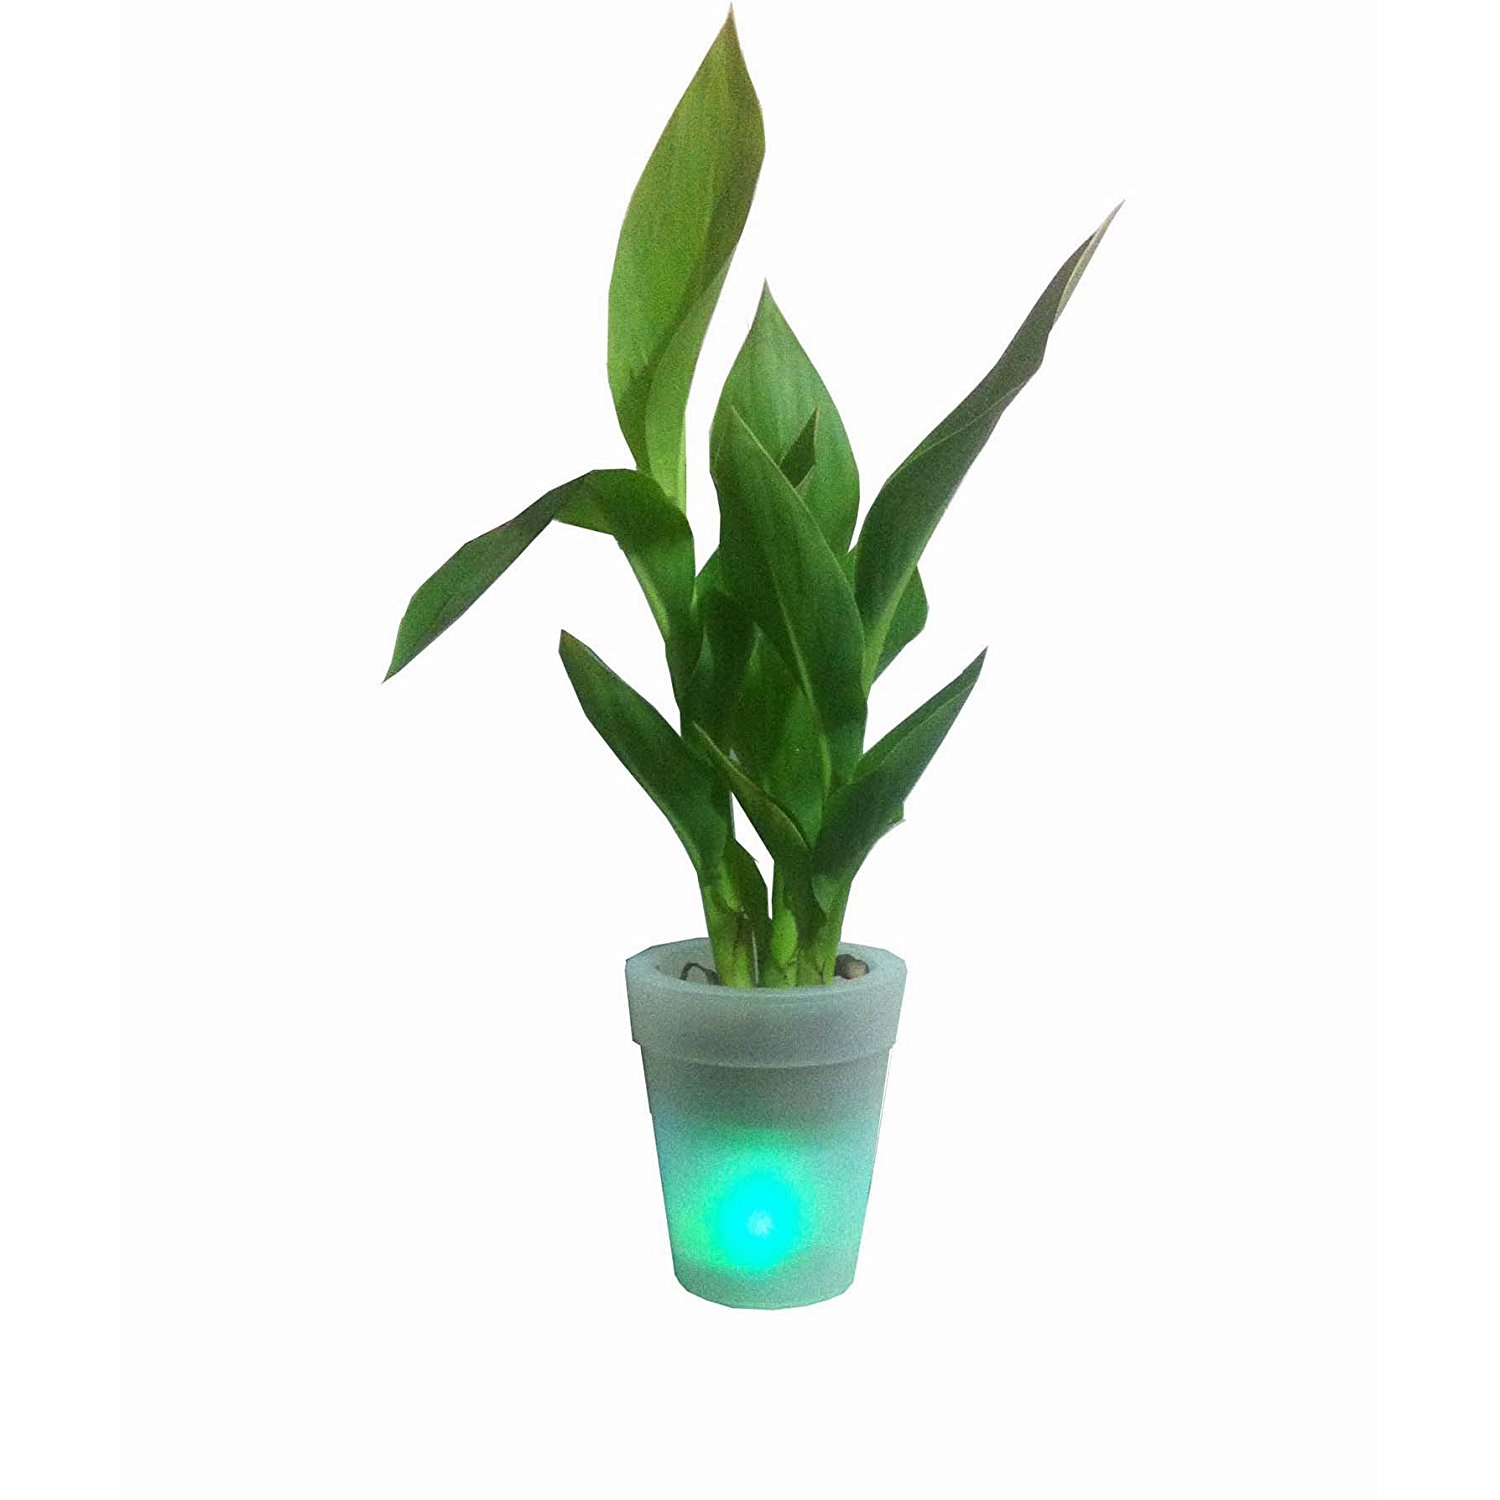 Cheap New Led Solar Vase Find New Led Solar Vase Deals On Line At